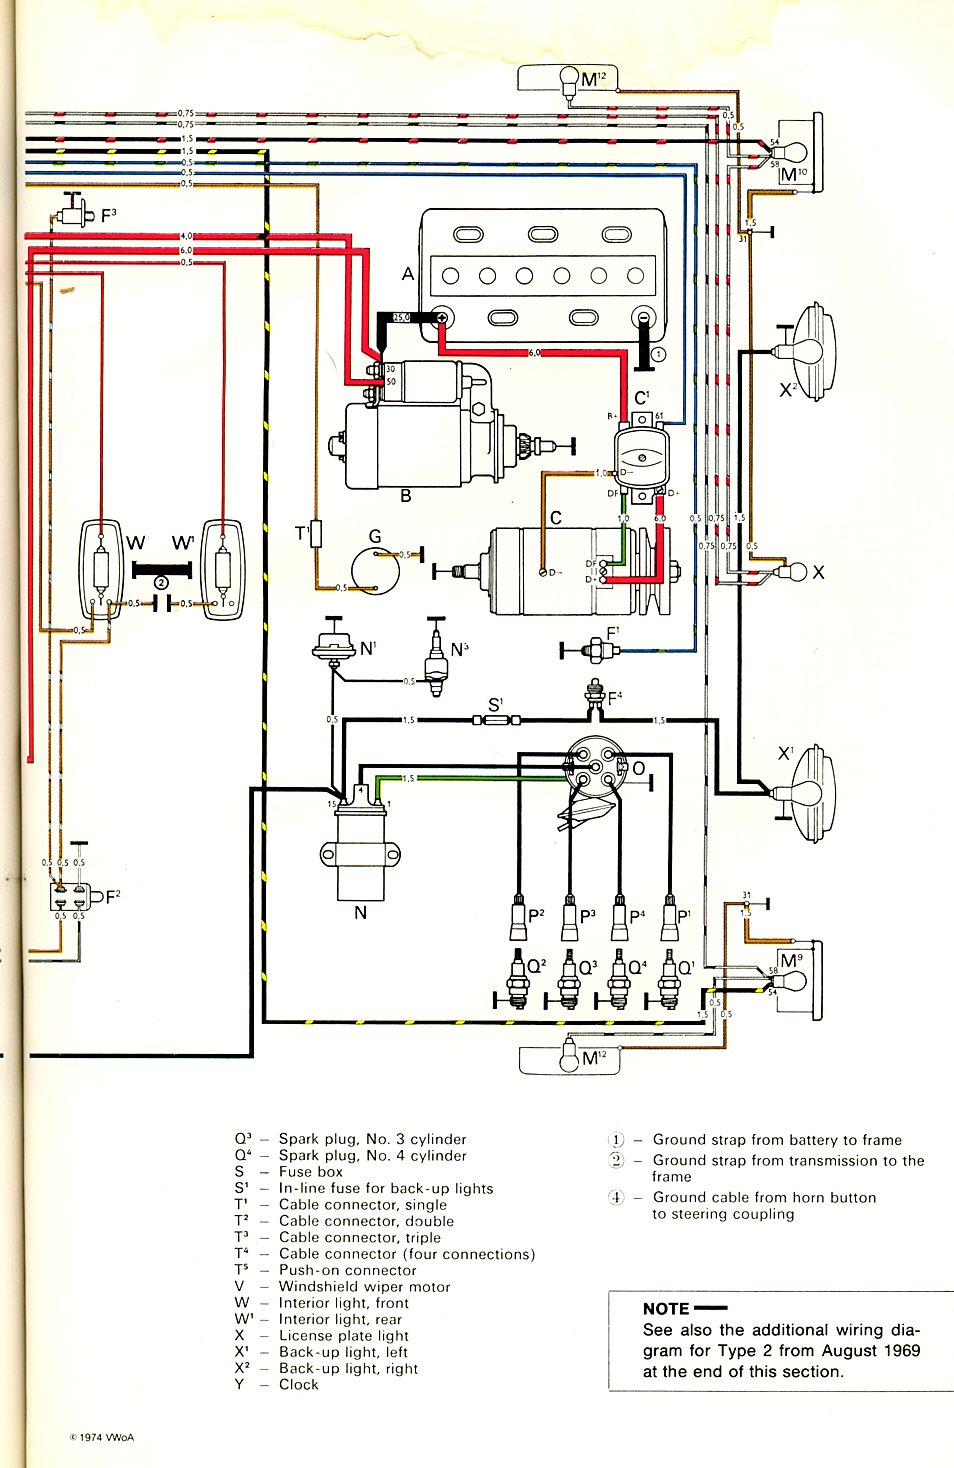 1960 Vw Beetle Horn Wiring Library Marine Connectors Thesamba Com Type 2 Diagrams Rh Diagram 1966